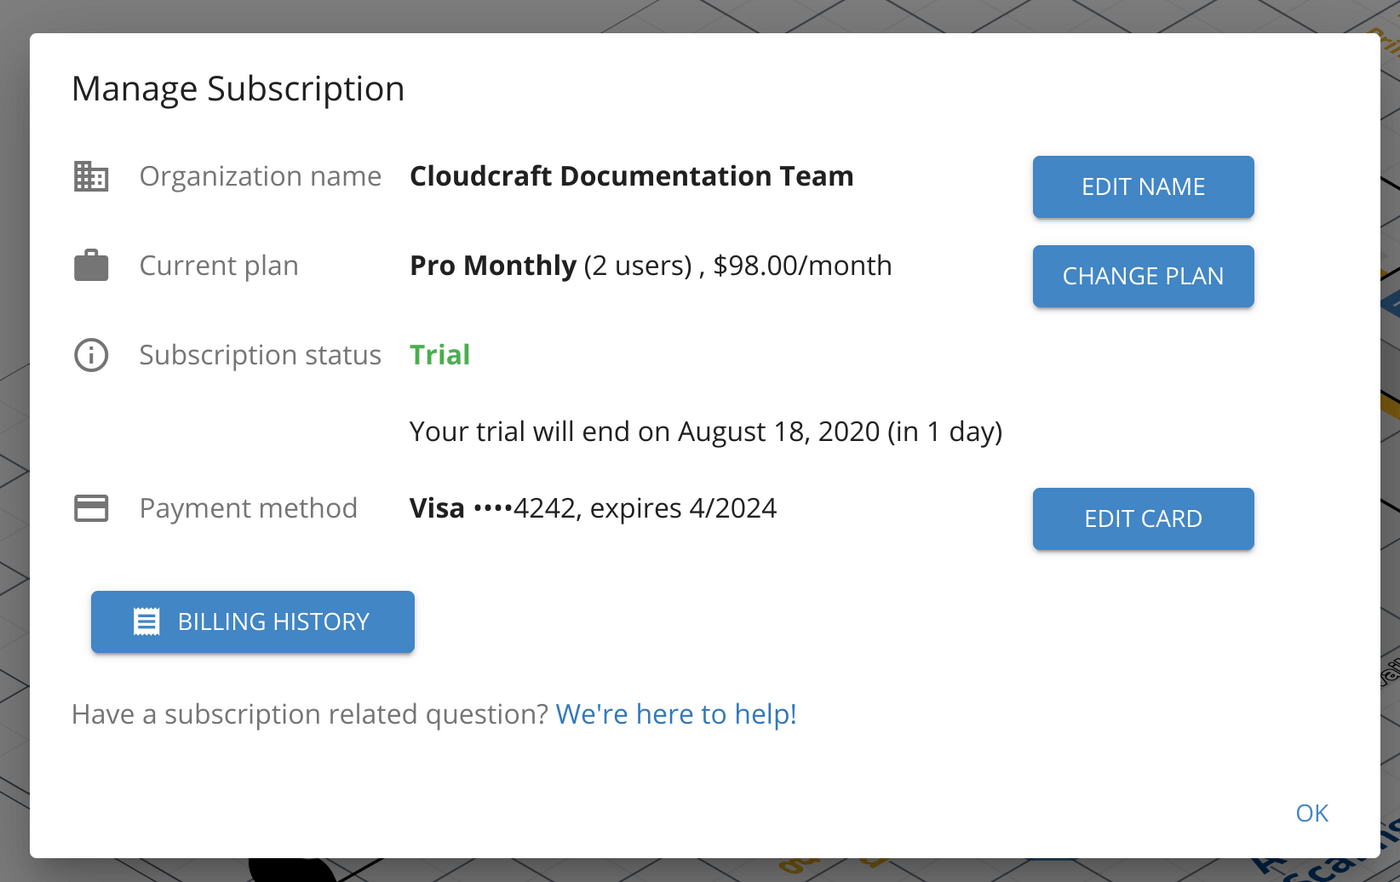 Manage your Cloudcraft subscription